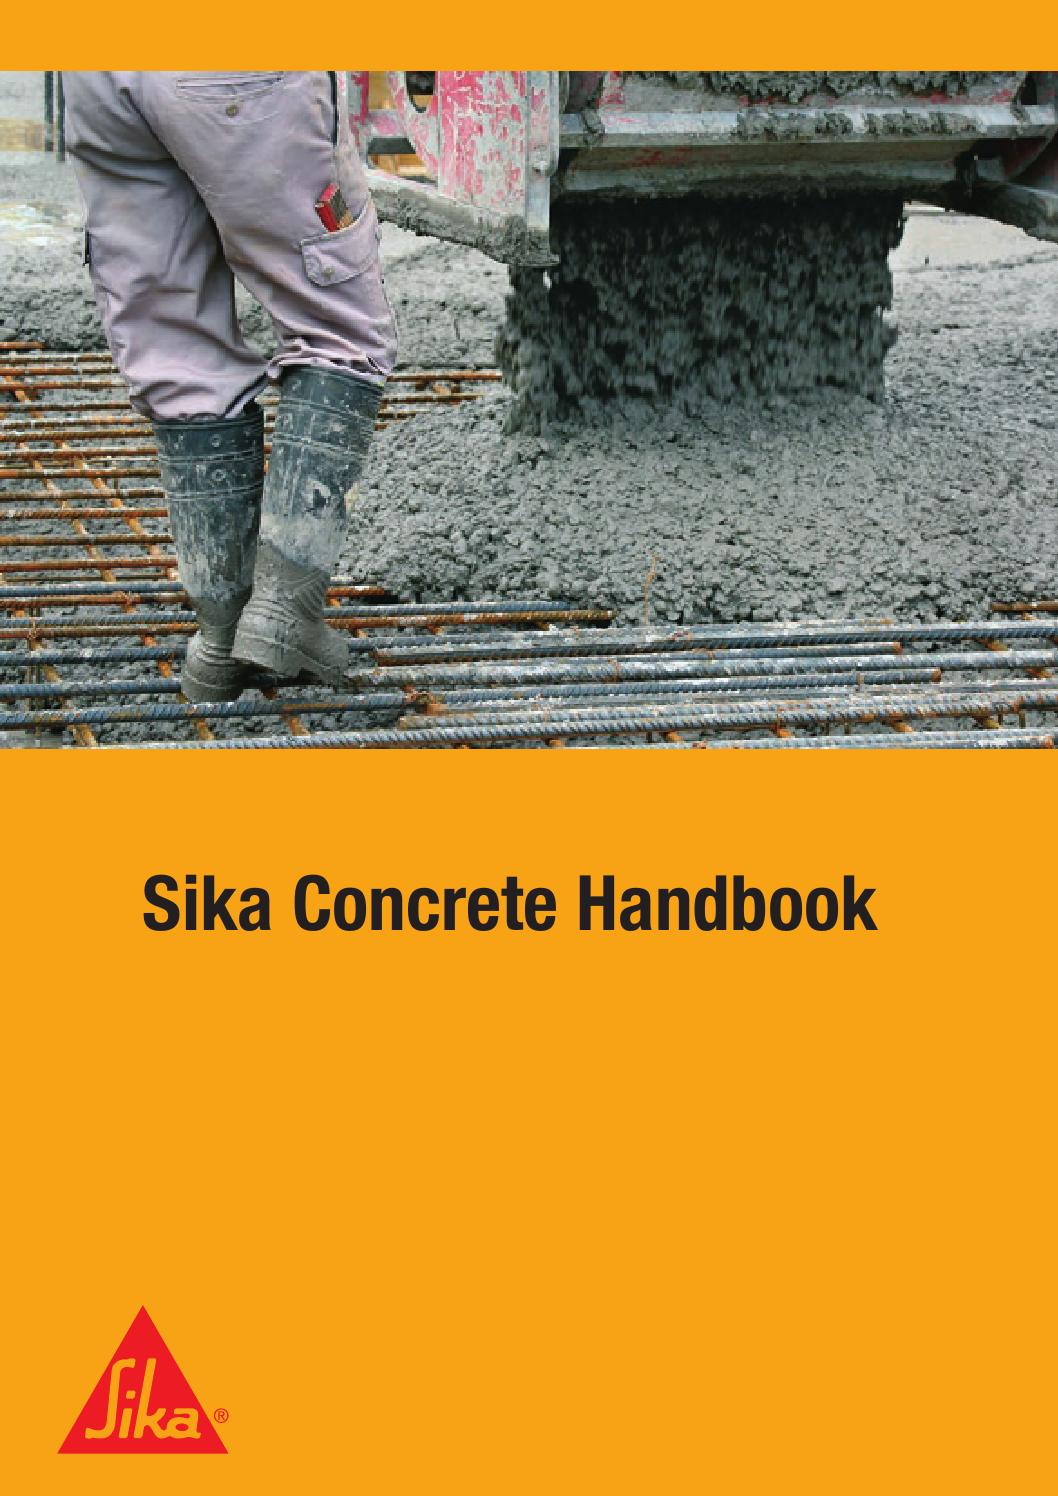 sika concrete handbook by sika ag issuu. Black Bedroom Furniture Sets. Home Design Ideas